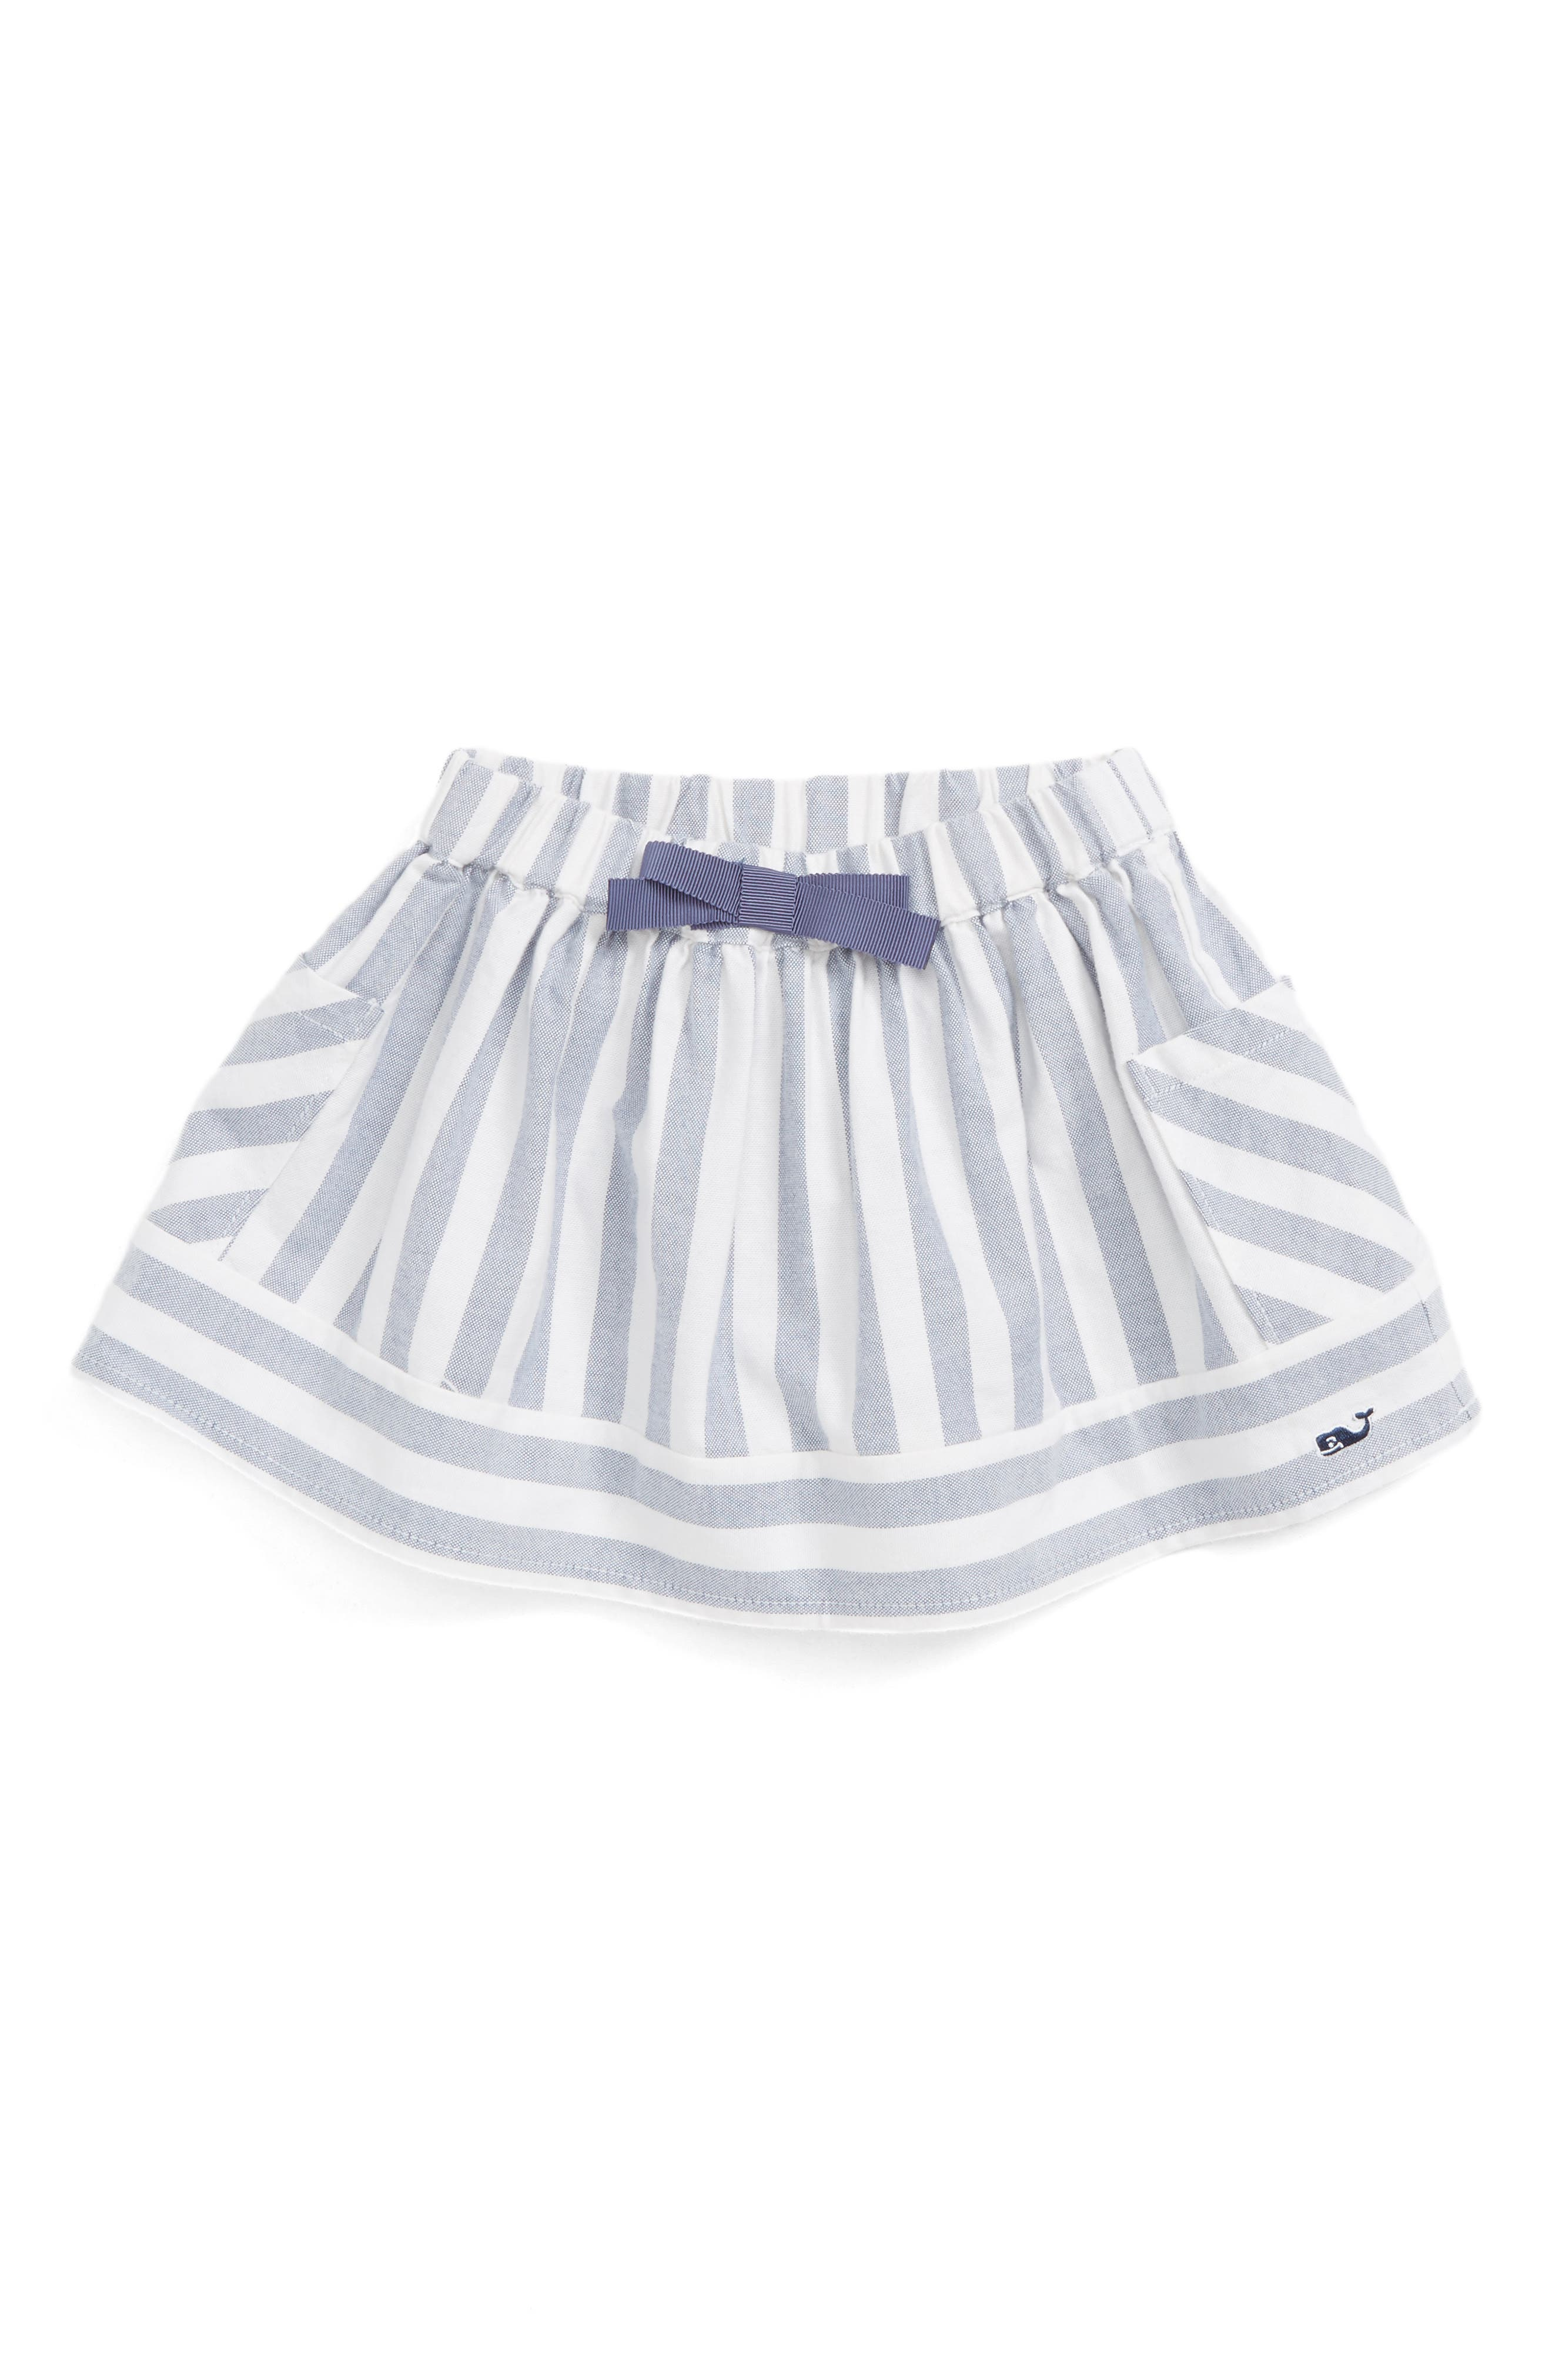 VINEYARD VINES Coastside Stripe Skirt